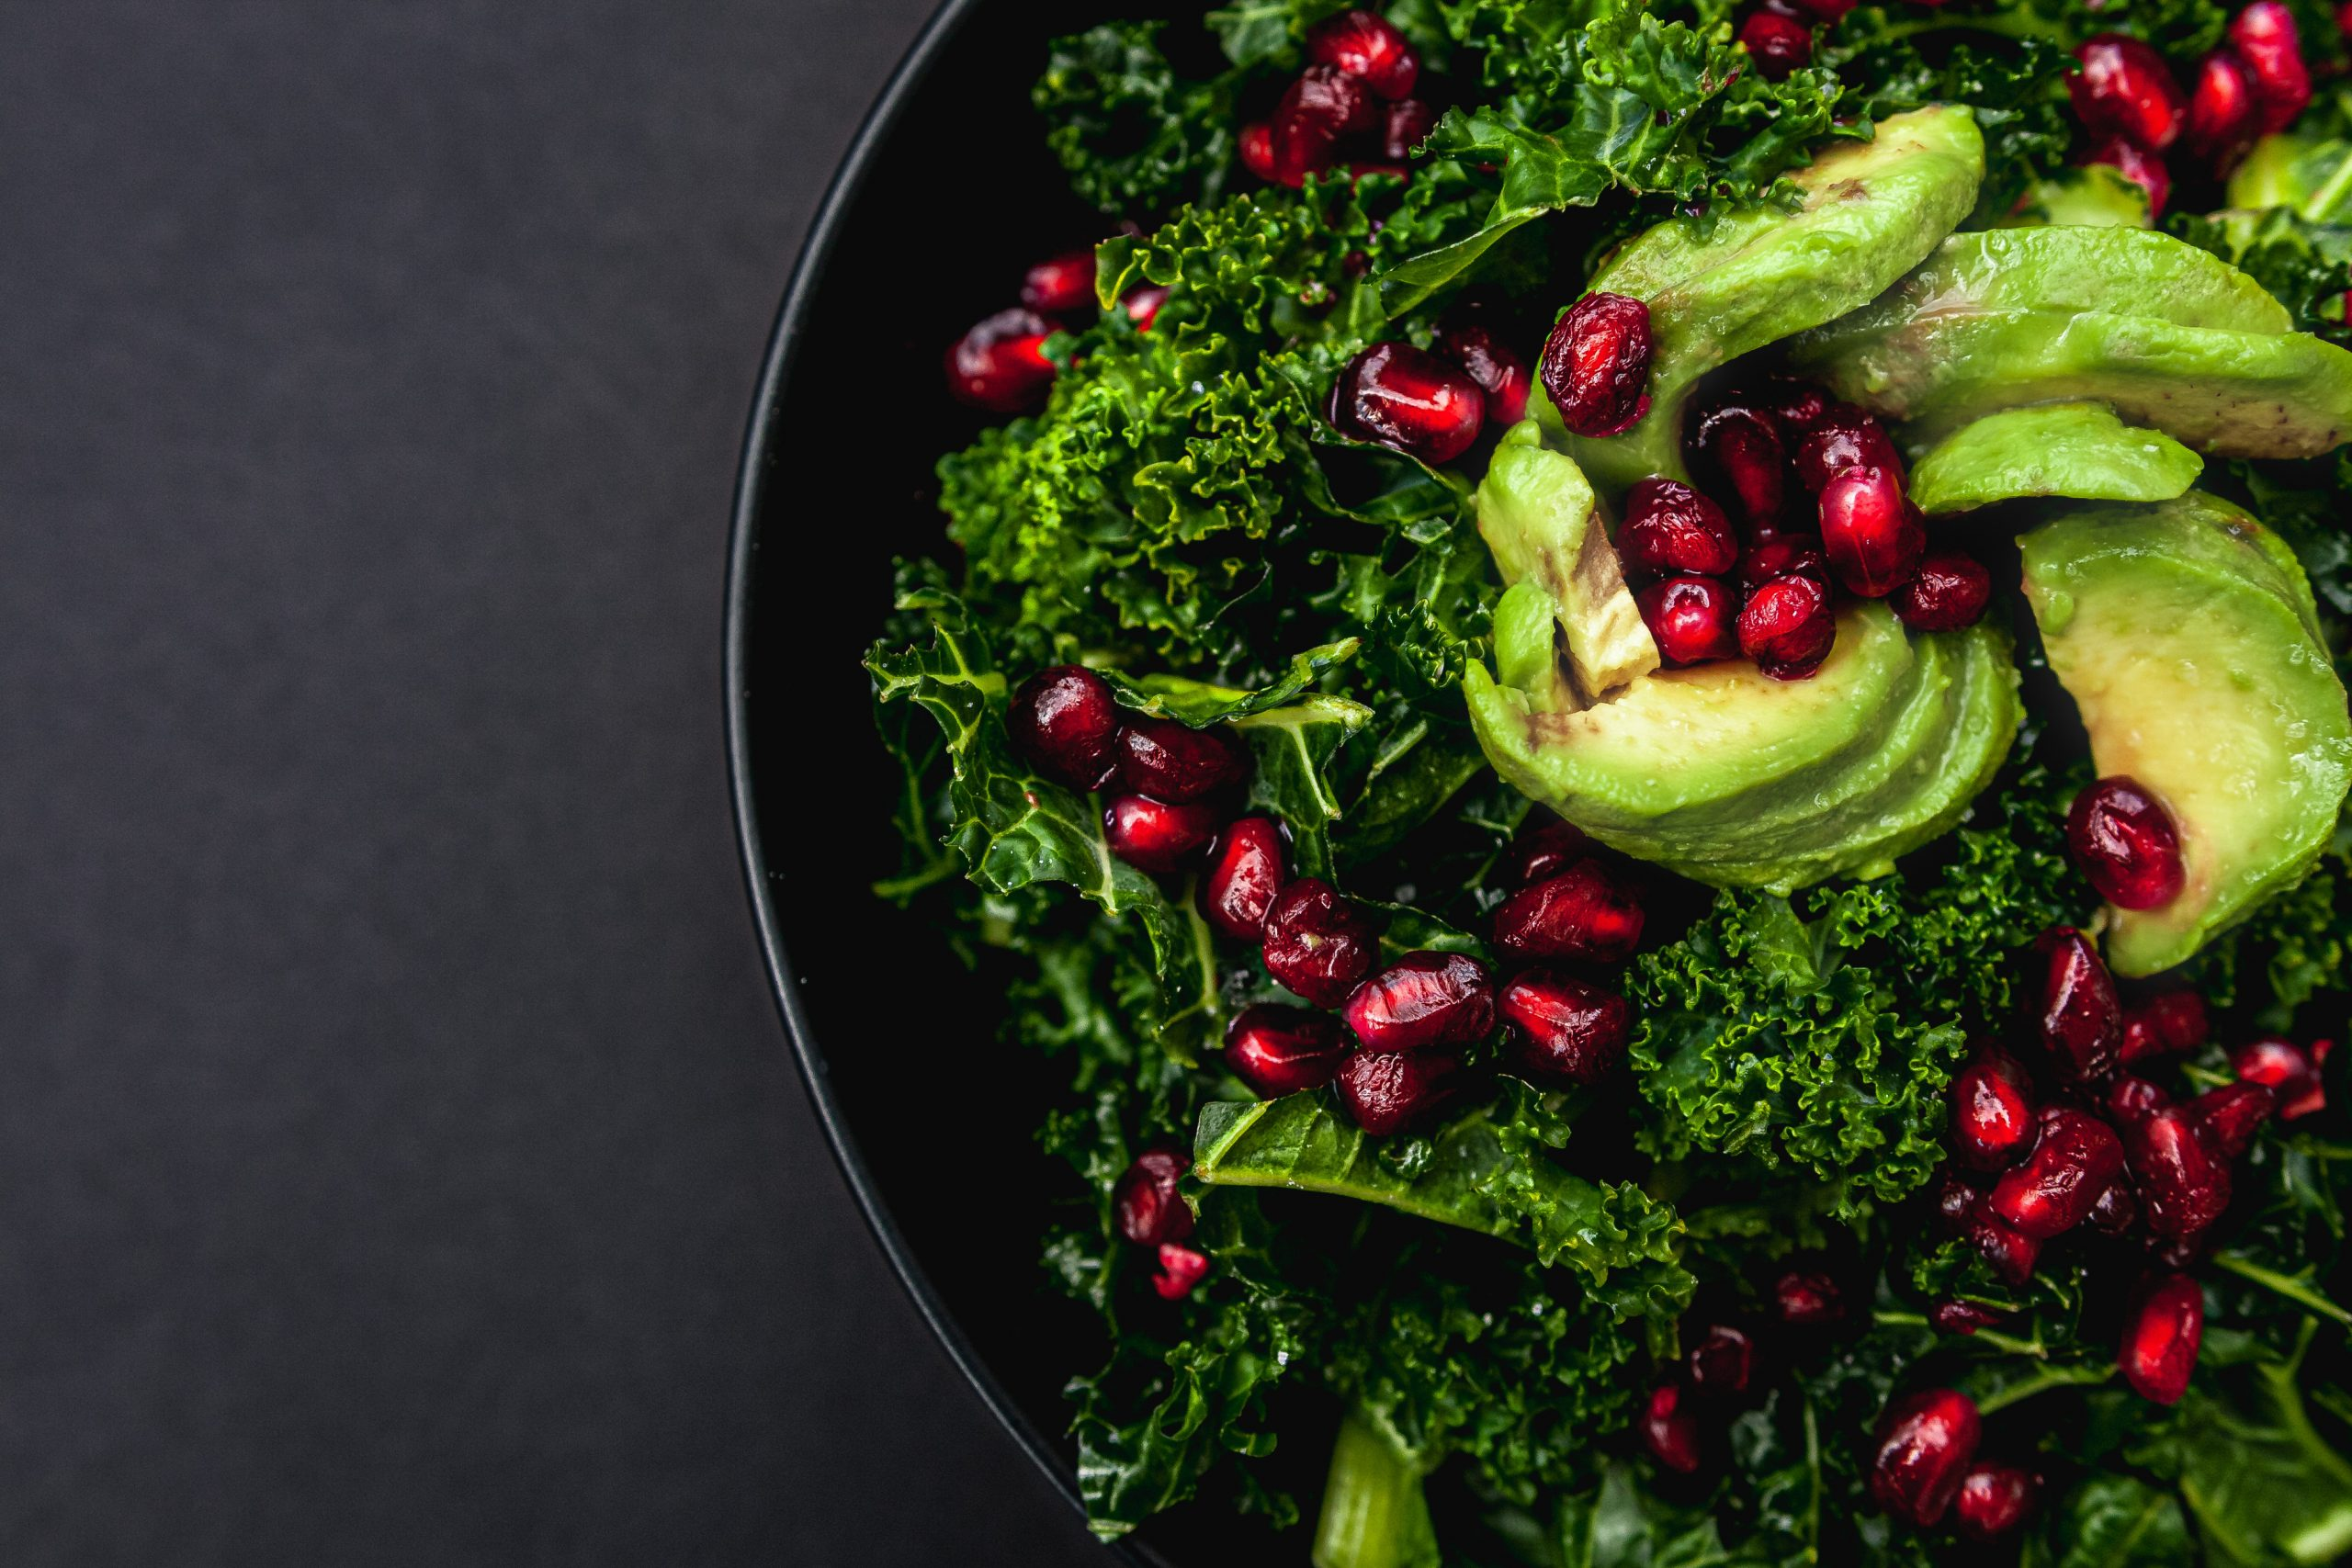 Food photo of kale salad topped with pomegranate and avocado